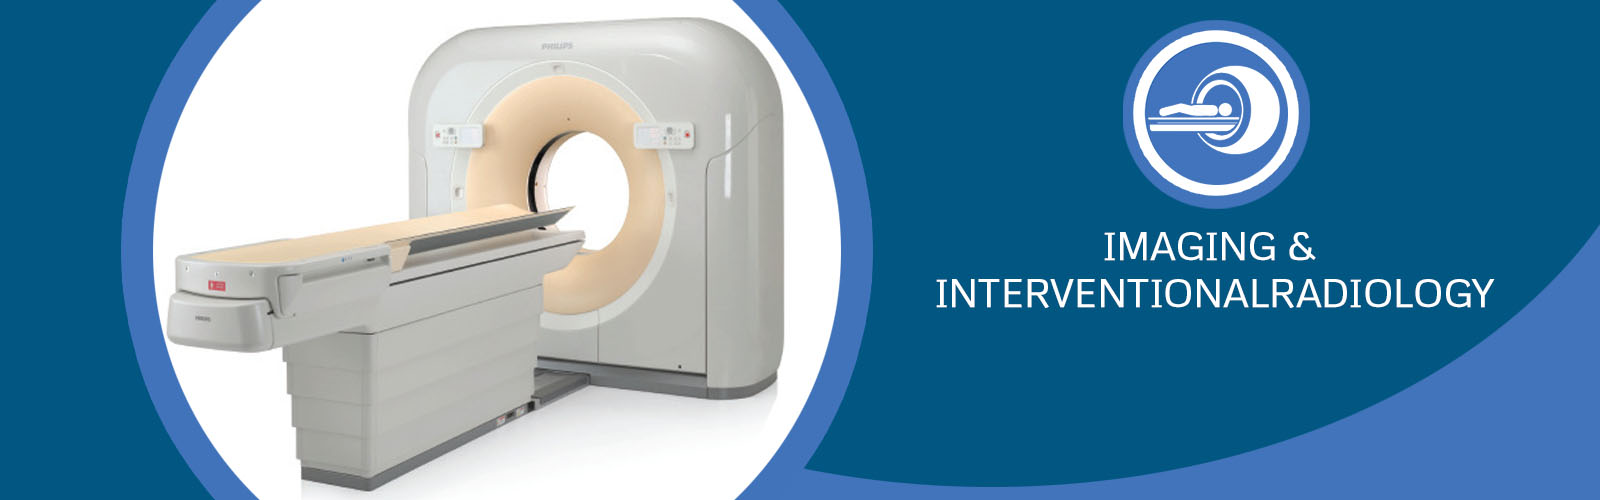 Imaging & Interventional Radiology Surgery